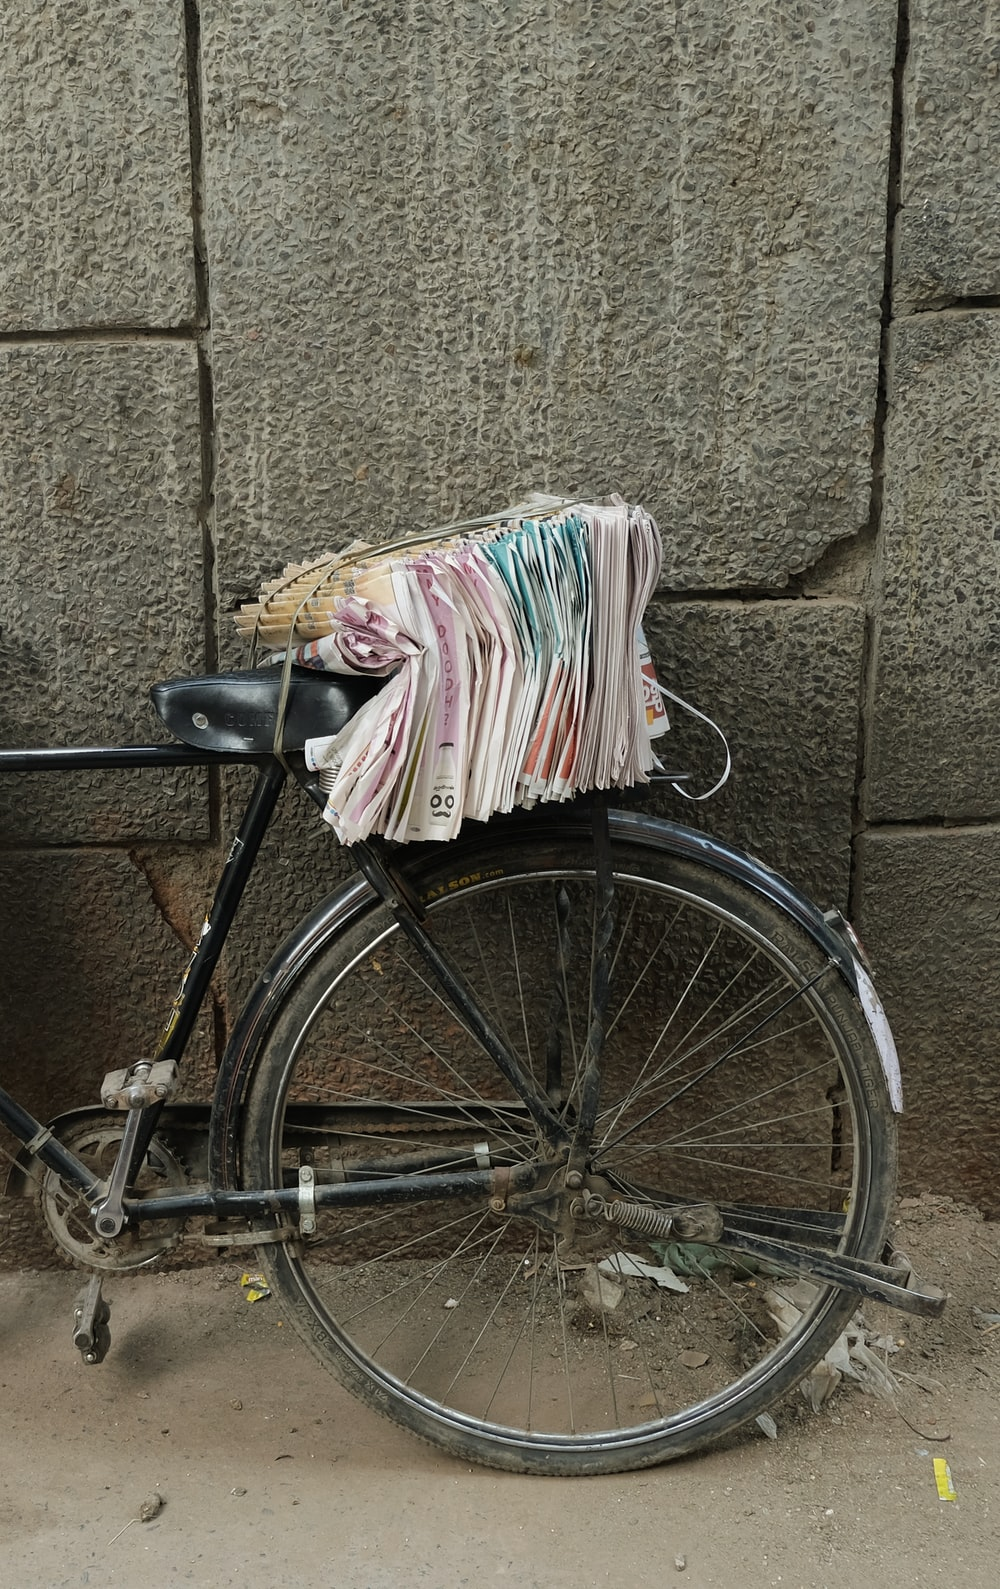 black bicycle with white and pink textile on it